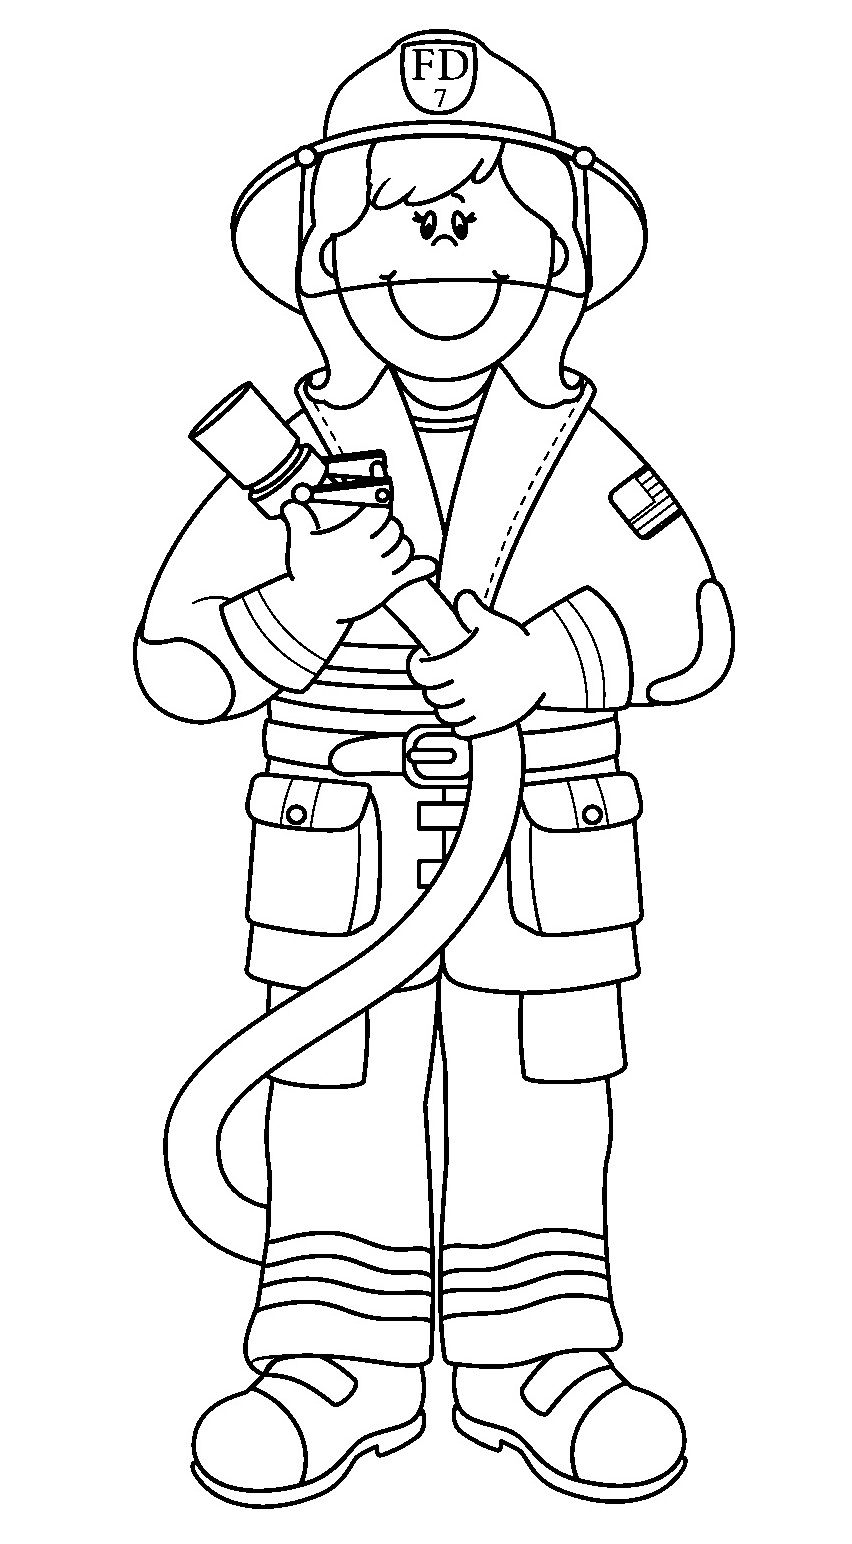 Printable Firefighter Coloring Pages Coloring Me Cartoon Coloring Pages Firefighter Clipart Coloring Pages